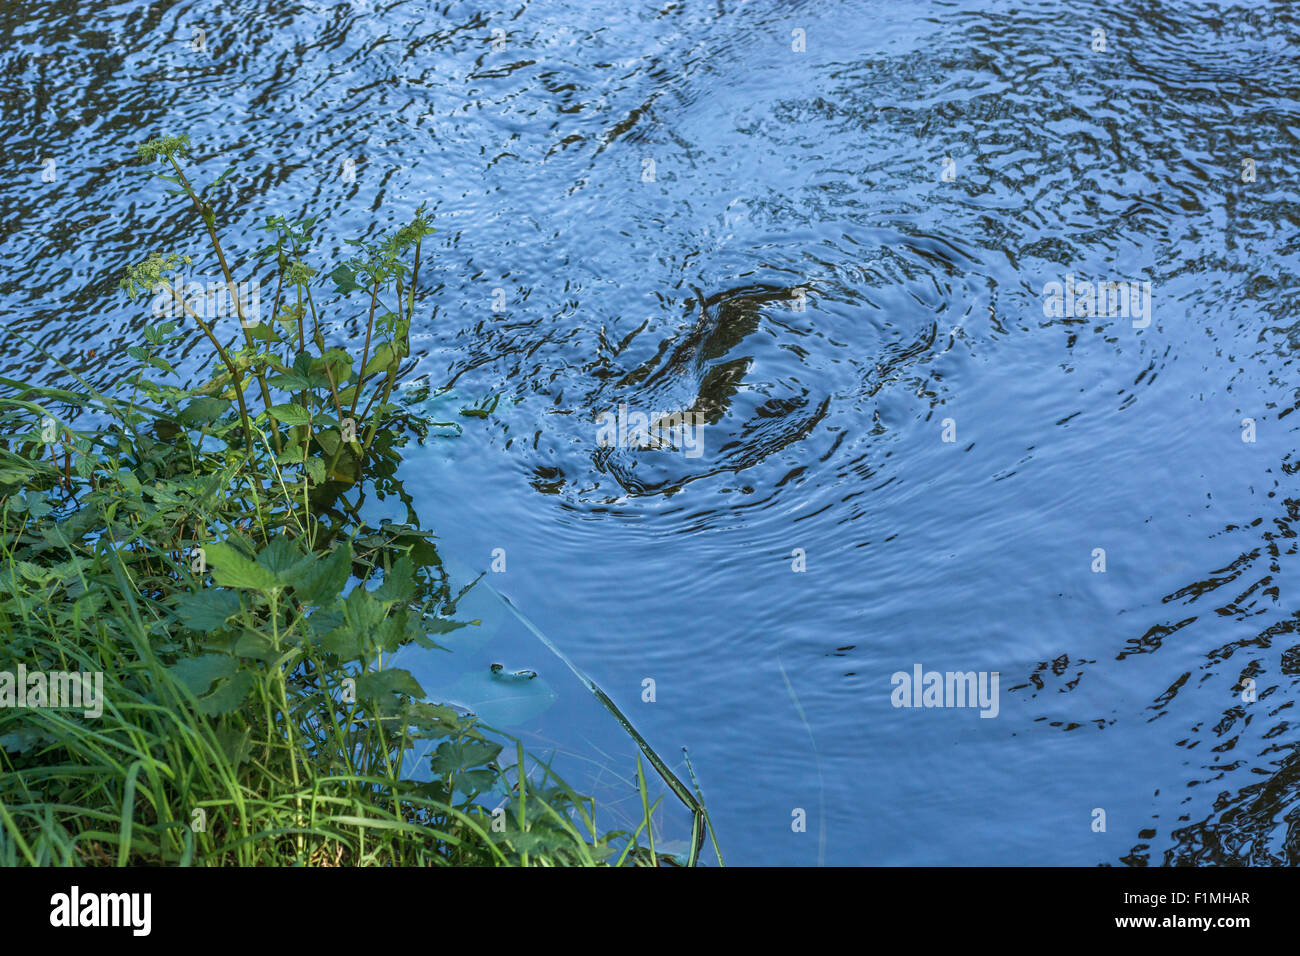 River Fowey, whirling waters close to bank. - Stock Image